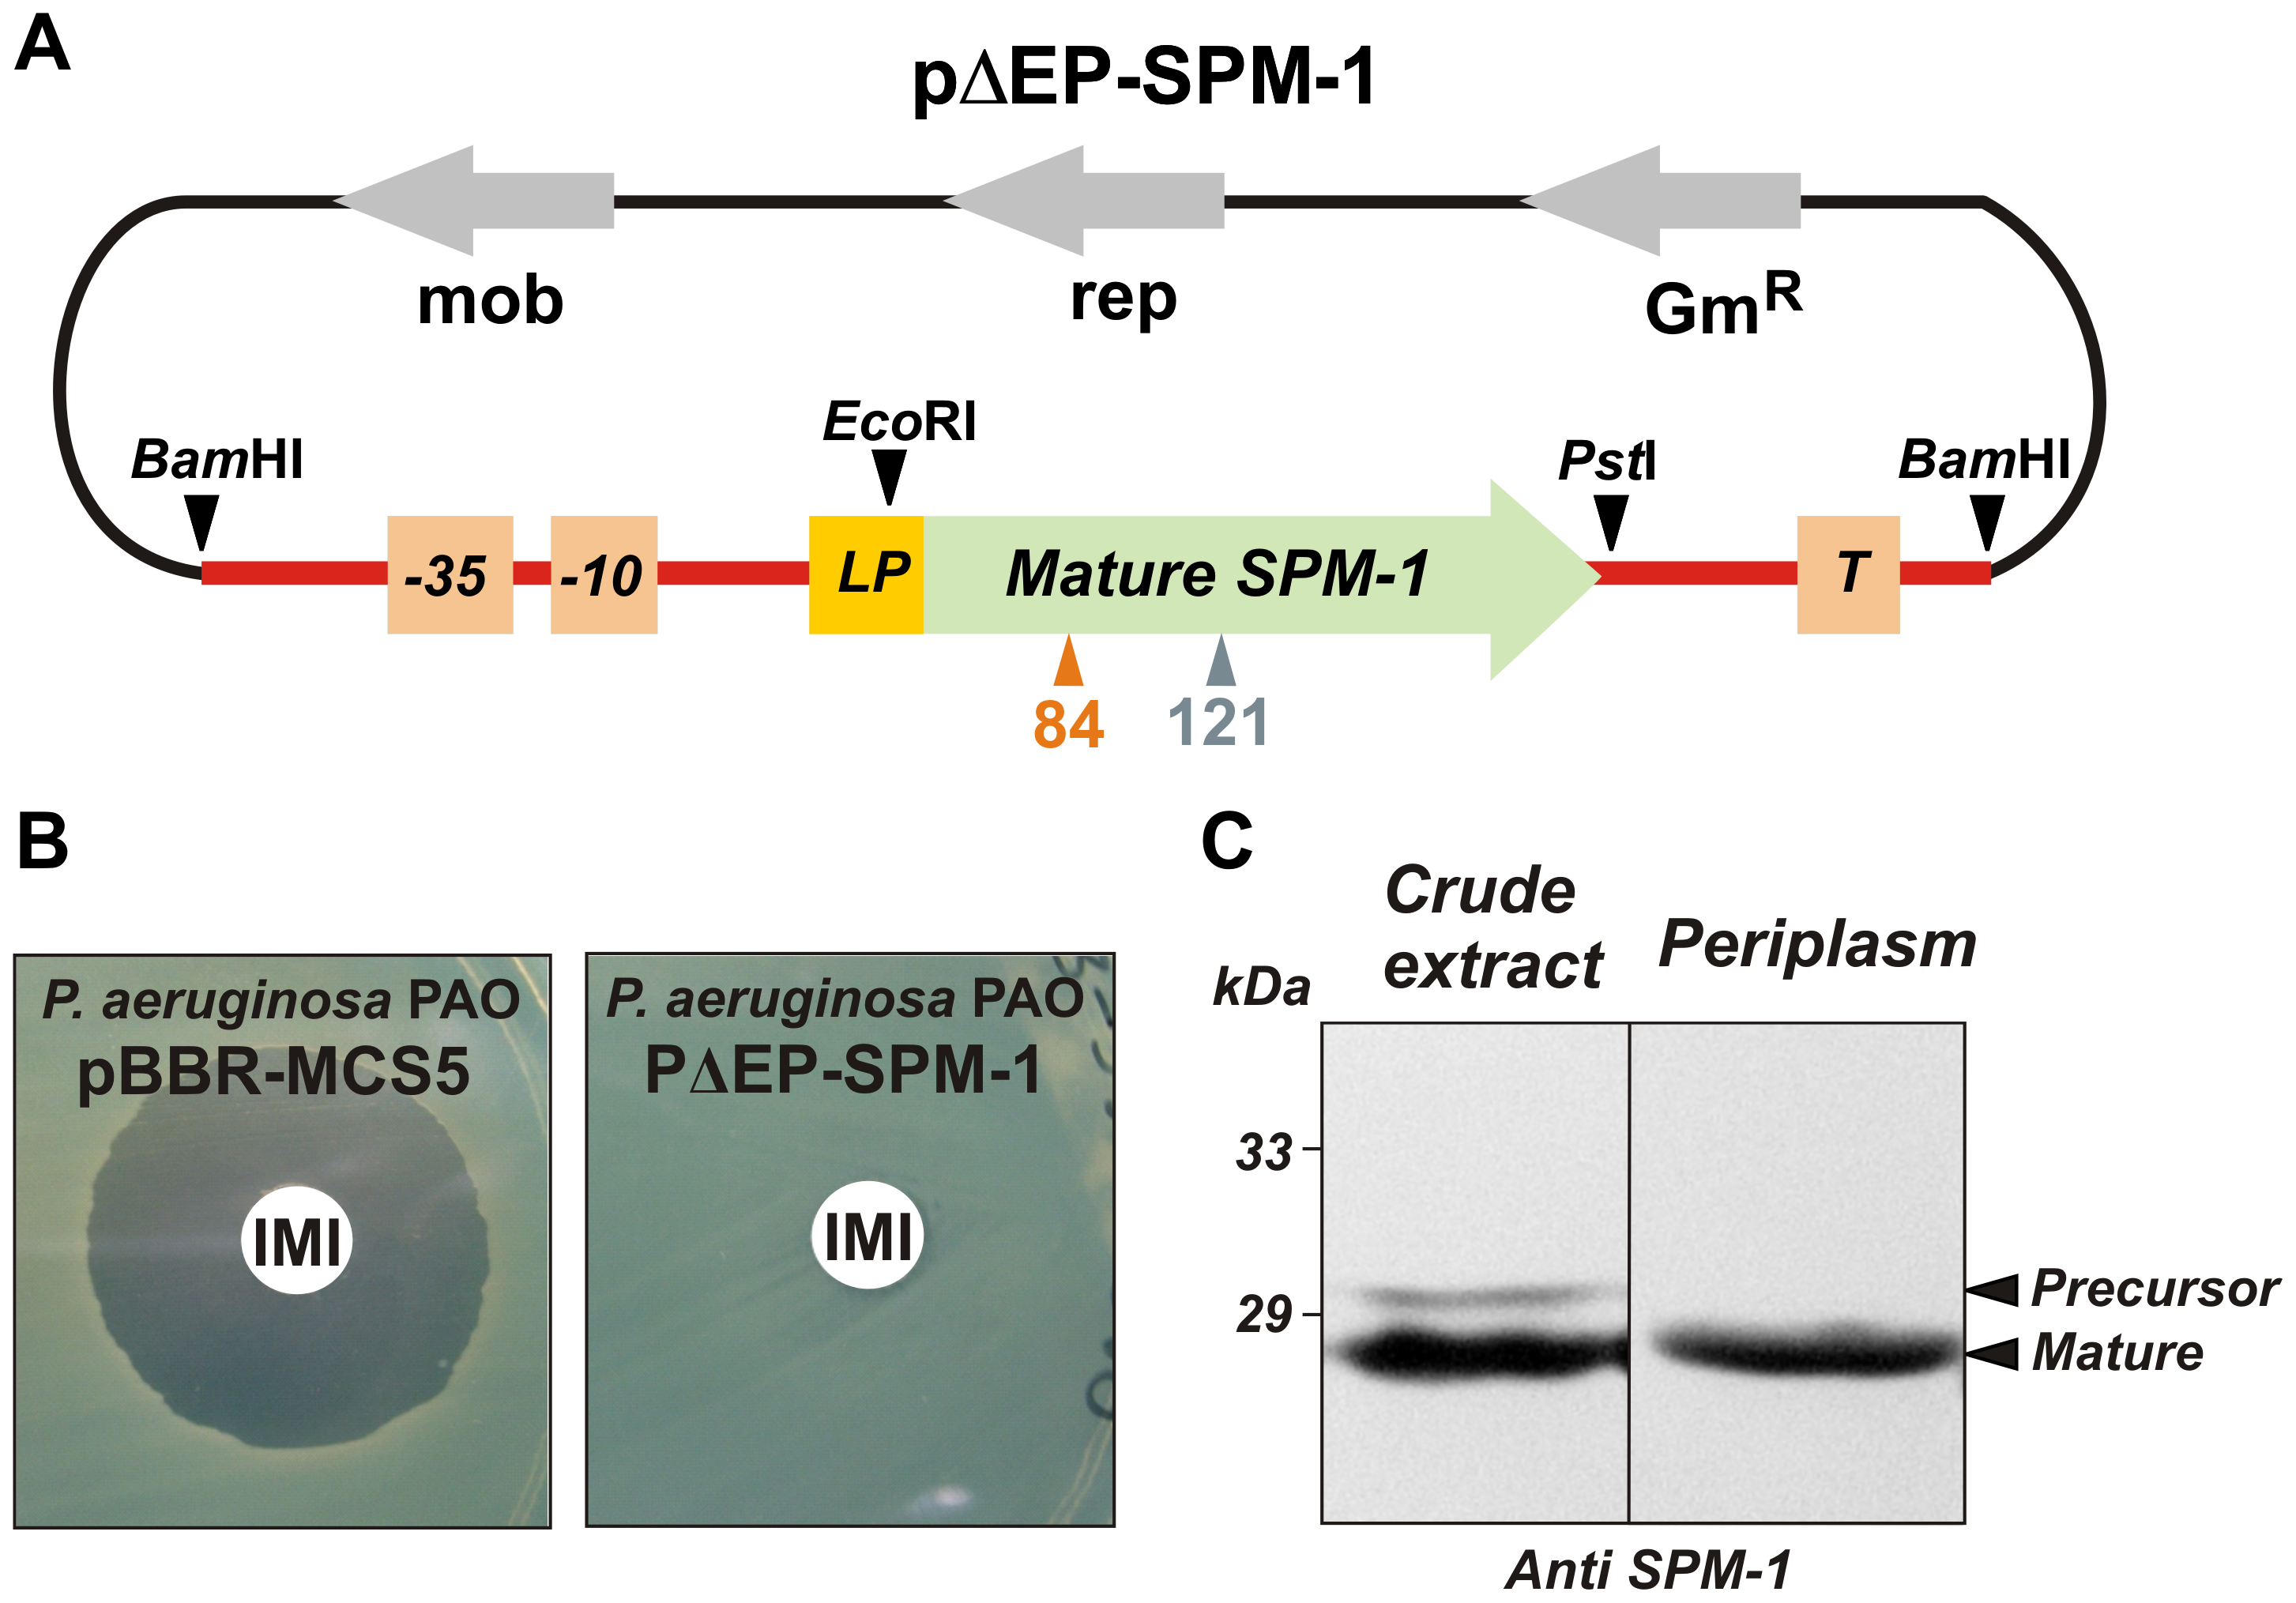 (A) Plasmid pΔEP-SPM-1, showing the transcriptional unit (UT <i>bla</i><sub>SPM-1</sub> in red) harboring gene <i>bla</i><sub>SPM-1</sub>.